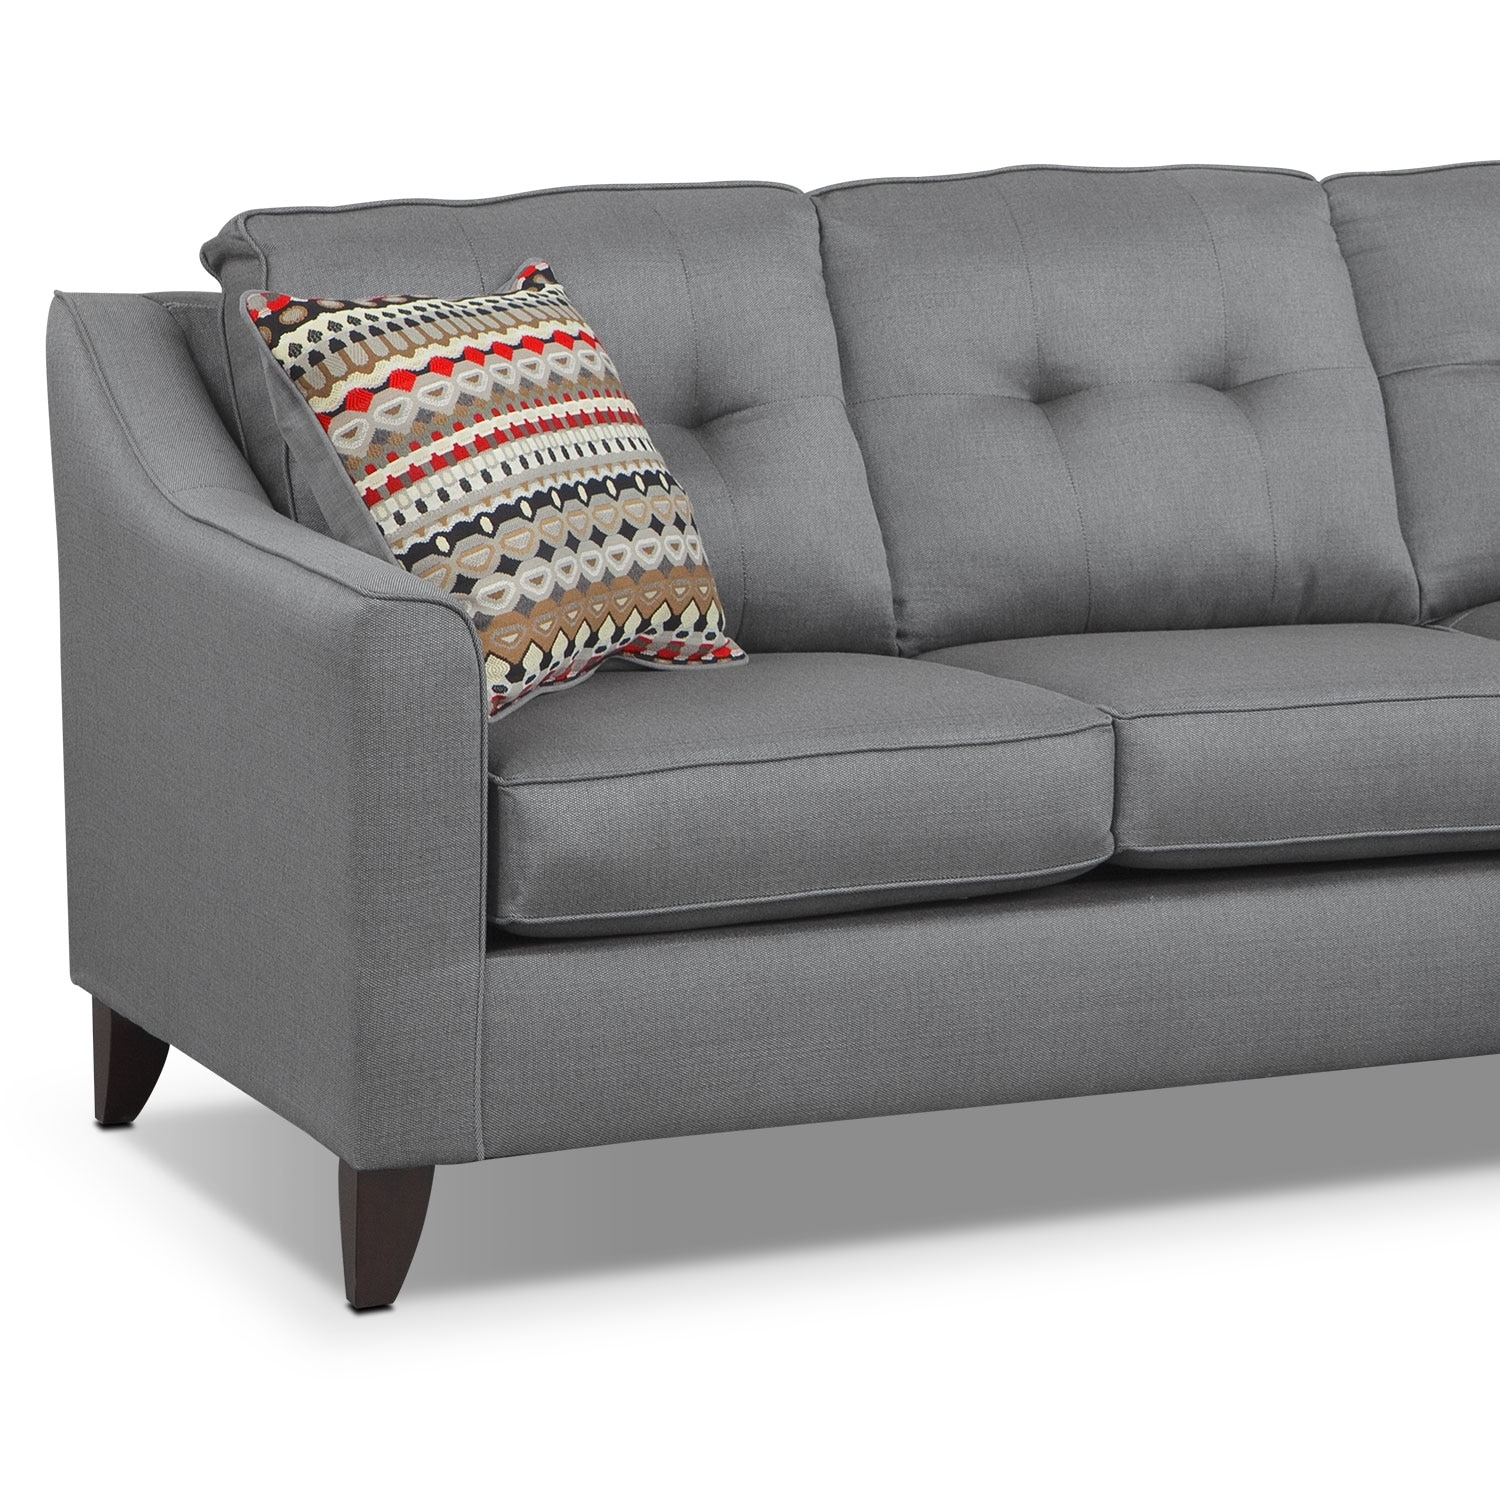 Marco chaise sofa gray american signature furniture for Chaise lounge couches